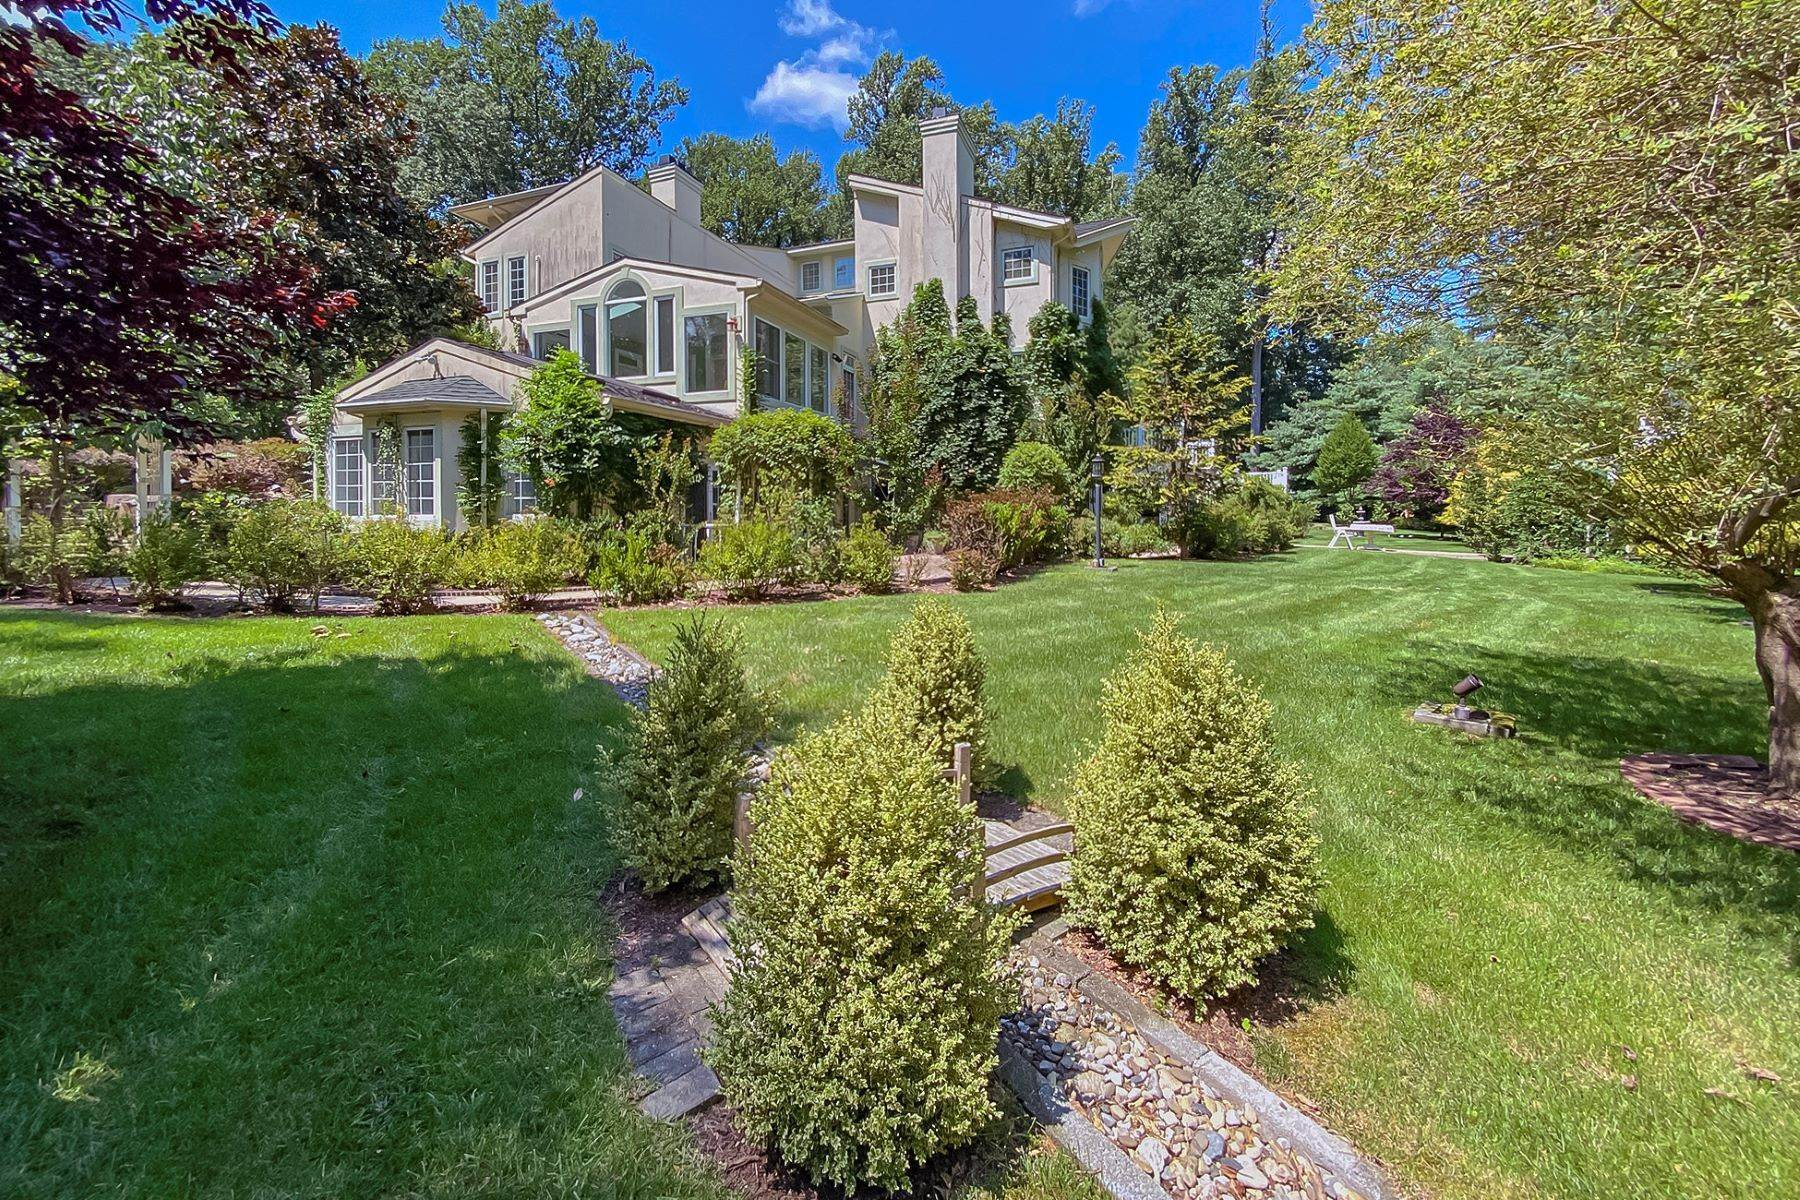 46. Single Family Homes for Sale at A Sprawling Showplace Where East Meets West 76 Pettit Place, Princeton, New Jersey 08540 United States